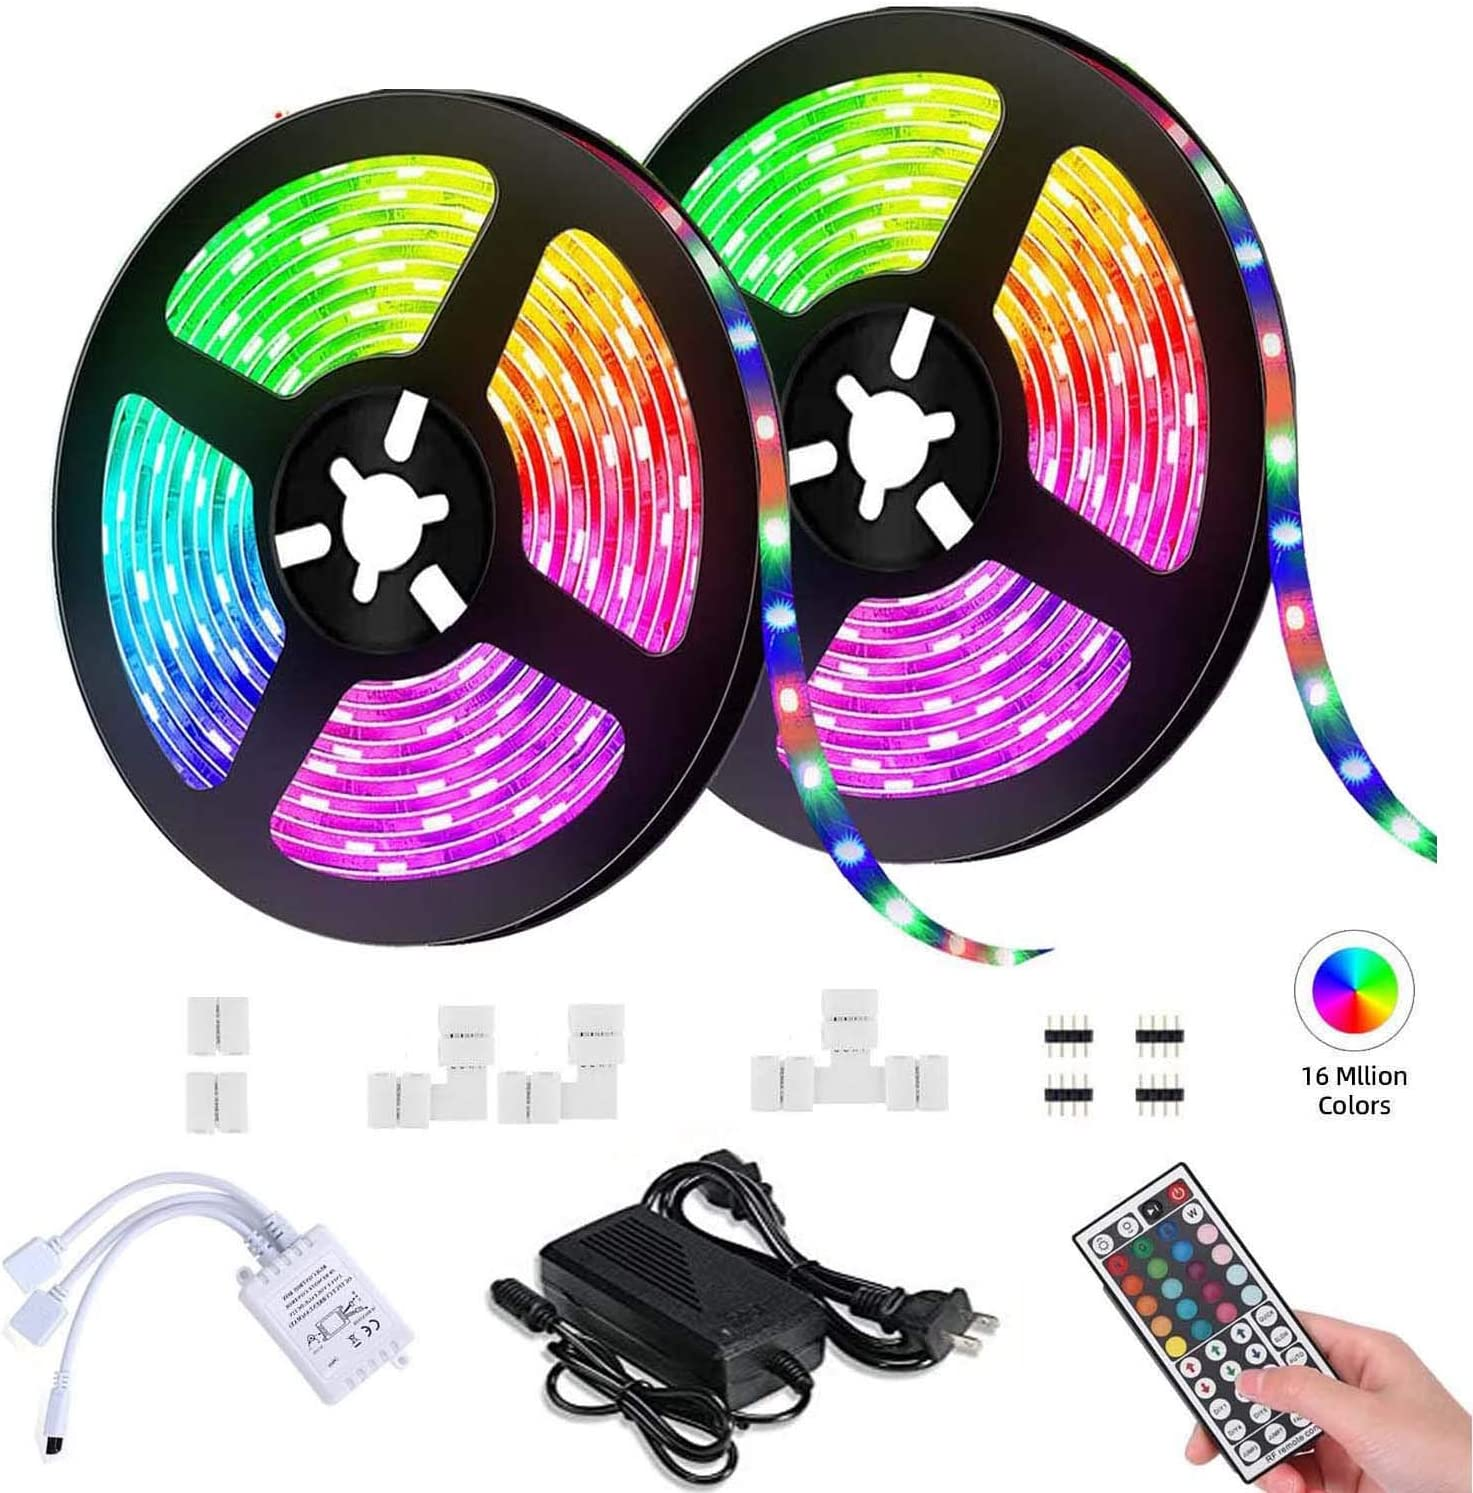 KeKeYM 15M//49.2ft Flexible Strip Light SMD 5050 RGB with Bluetooth Controller Changing Tape Lights kit with LED Sync to Music for TV Bedroom,Kitchen Under Counter,Under Bed Lighting LED Strip Lights